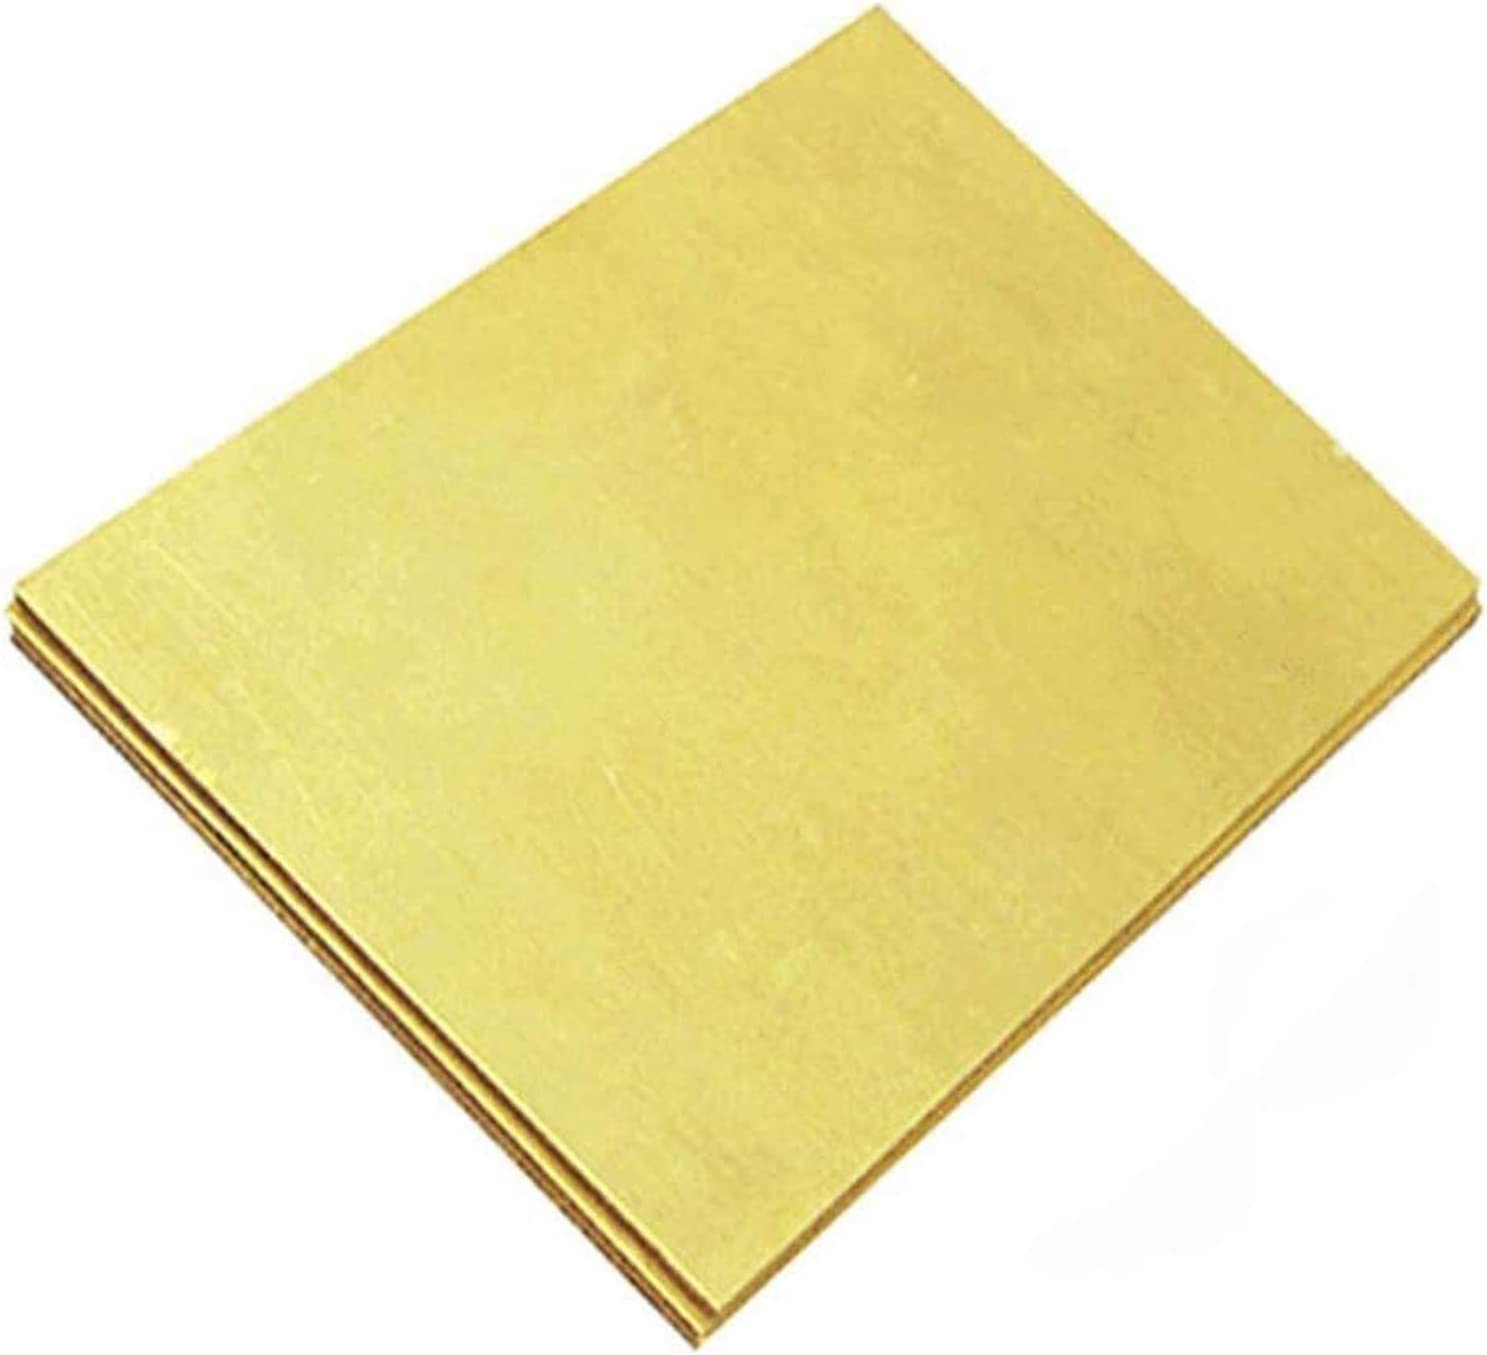 Brass Sheet 200x300mm Metal Widely latest Max 89% OFF Used Develop in Product